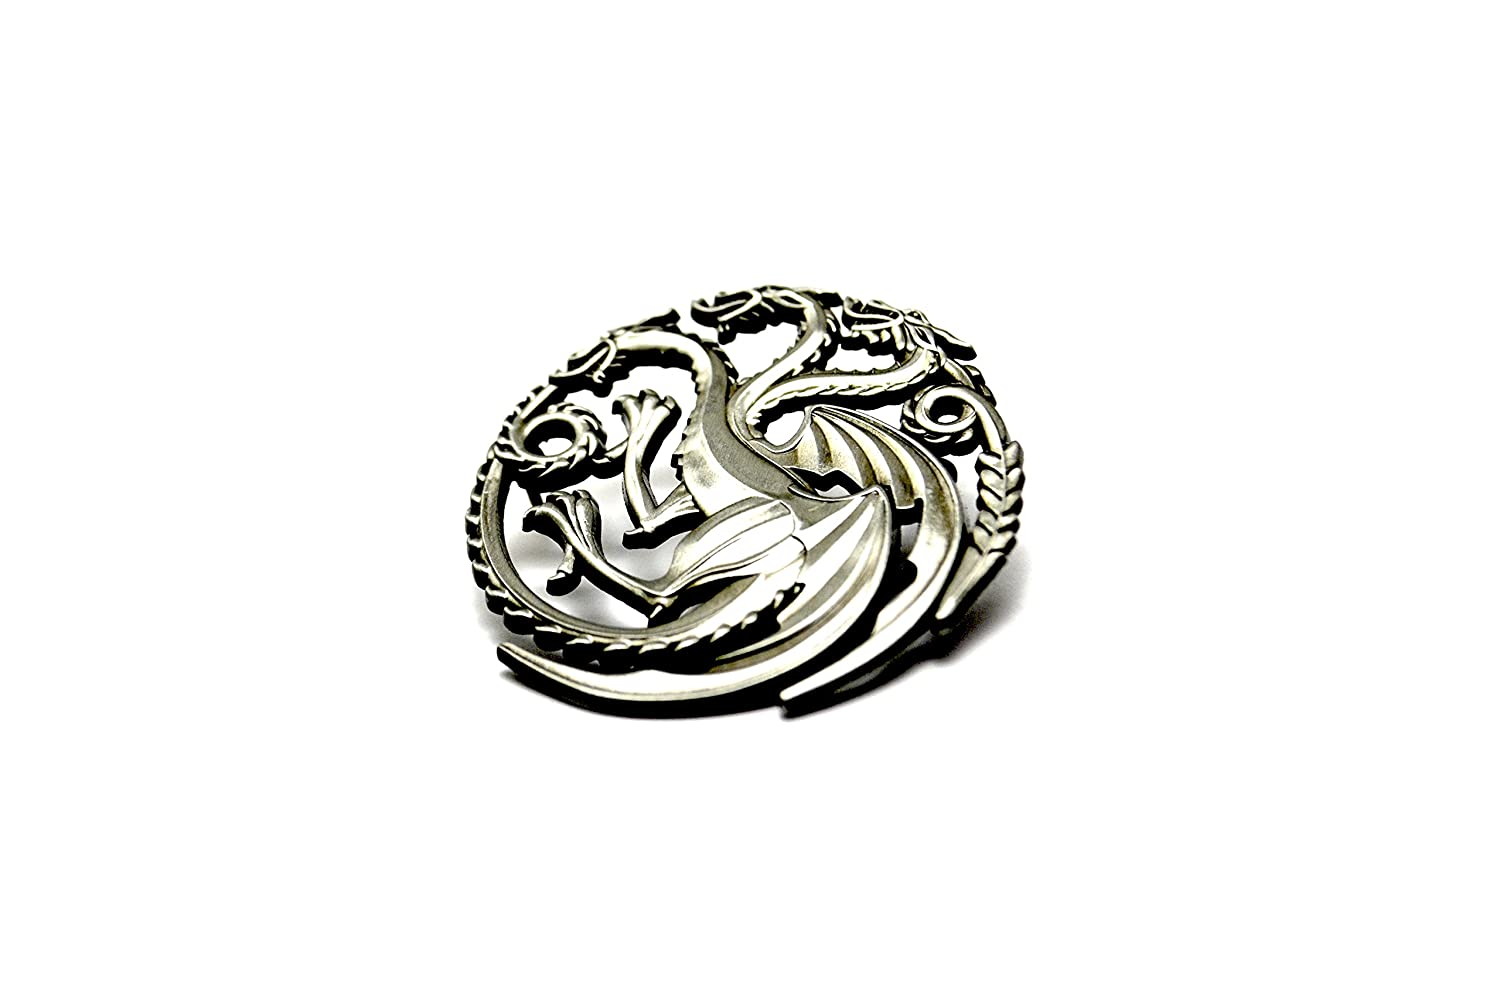 The House Targaryen Pin Sloth Steady HouseTargaryen